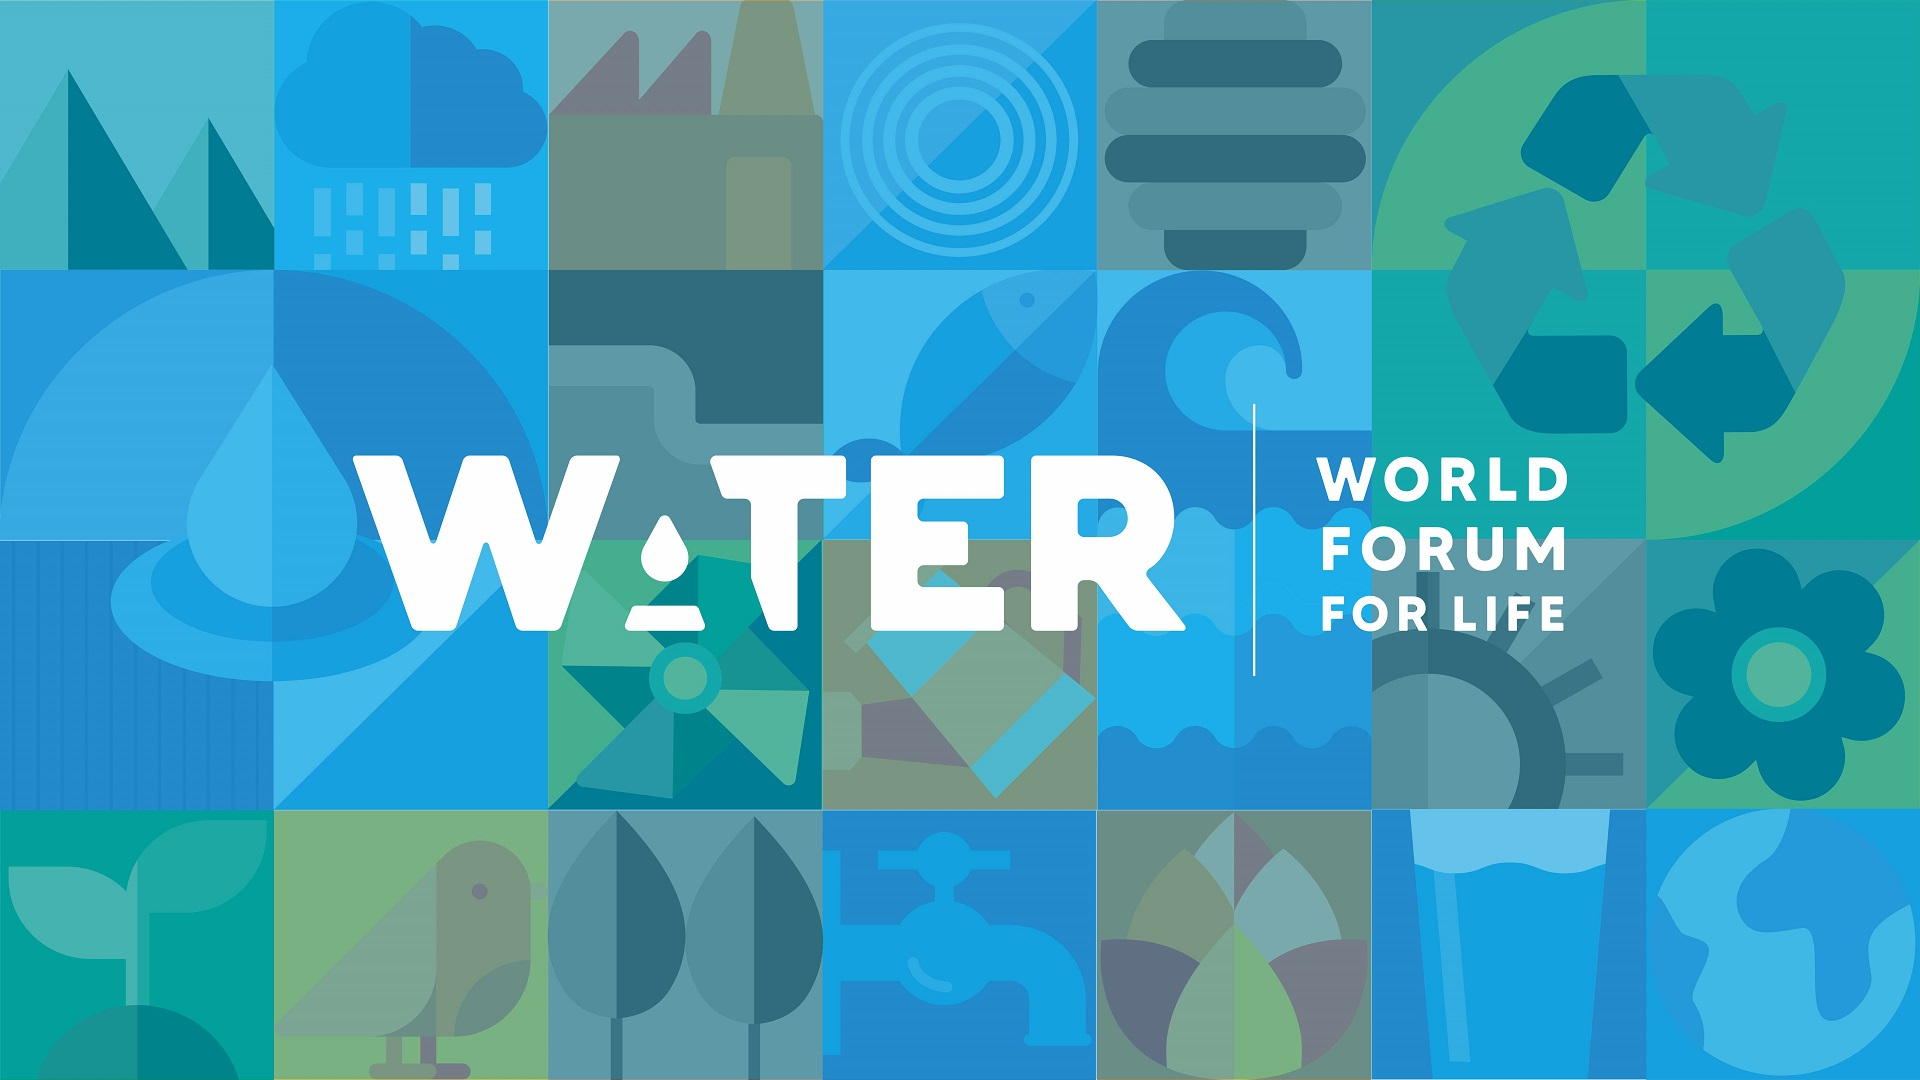 water-world-forum-for-life